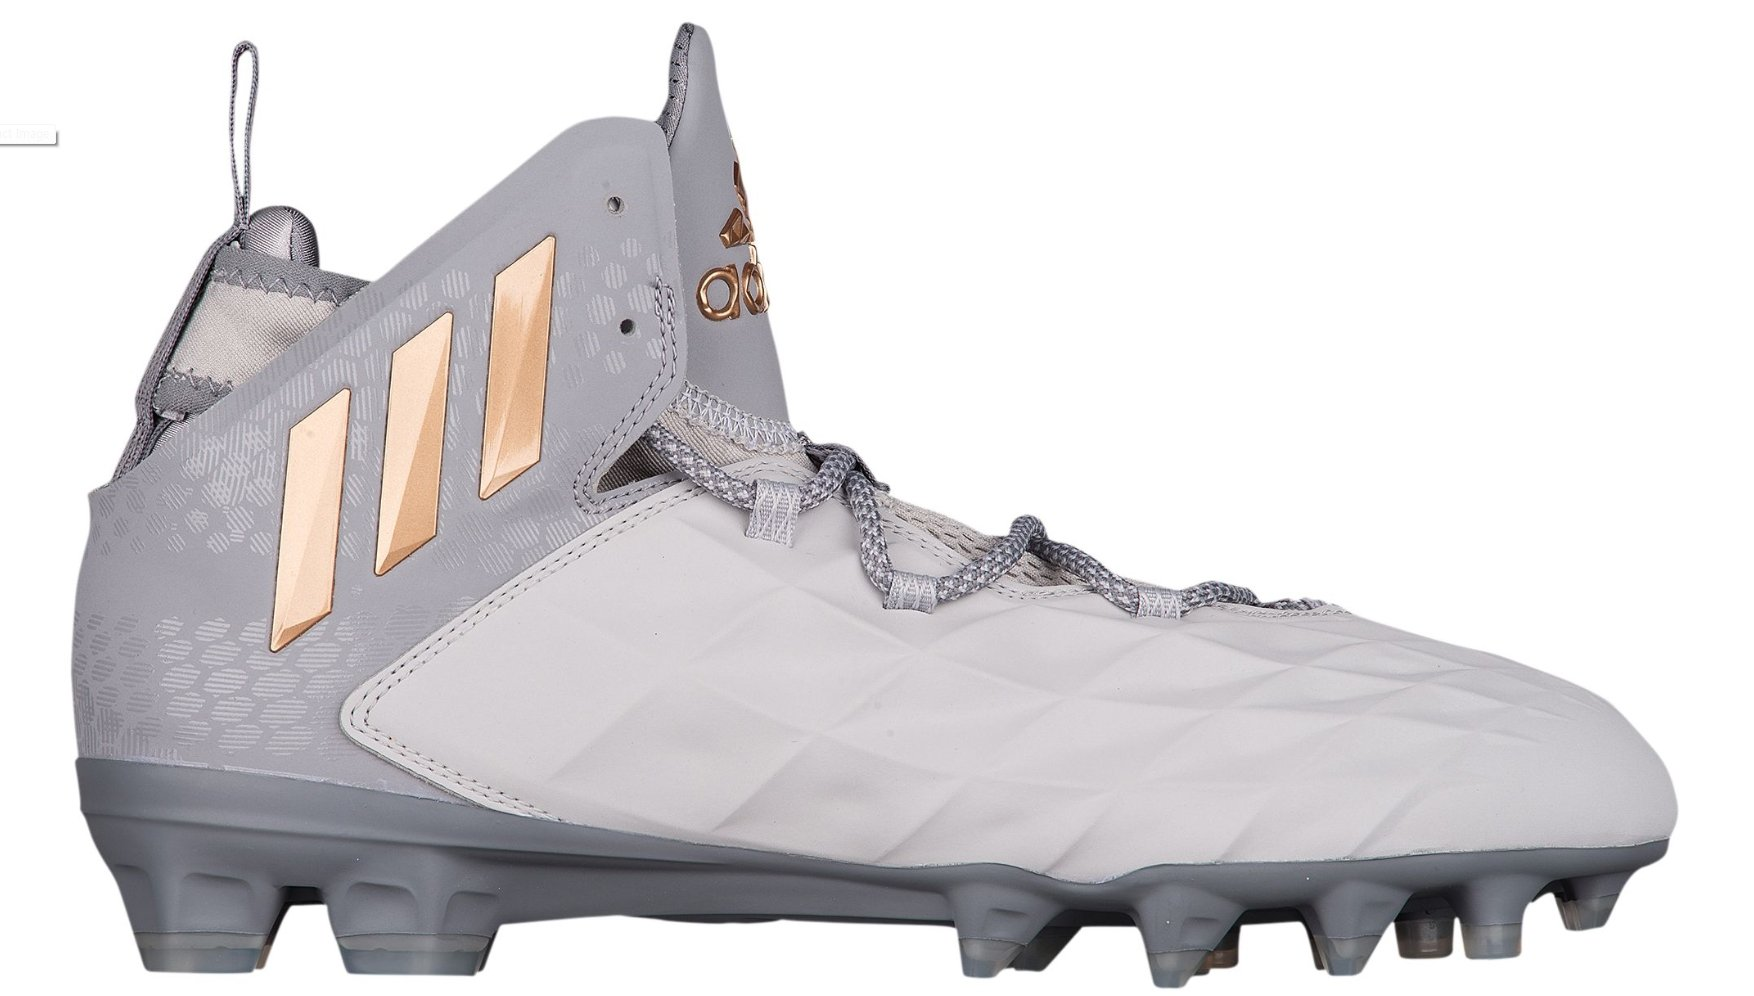 adidas Freak Lax Mid Cleat - Unisex Lacrosse 13 Grey/Copper Metallic/Dark Grey